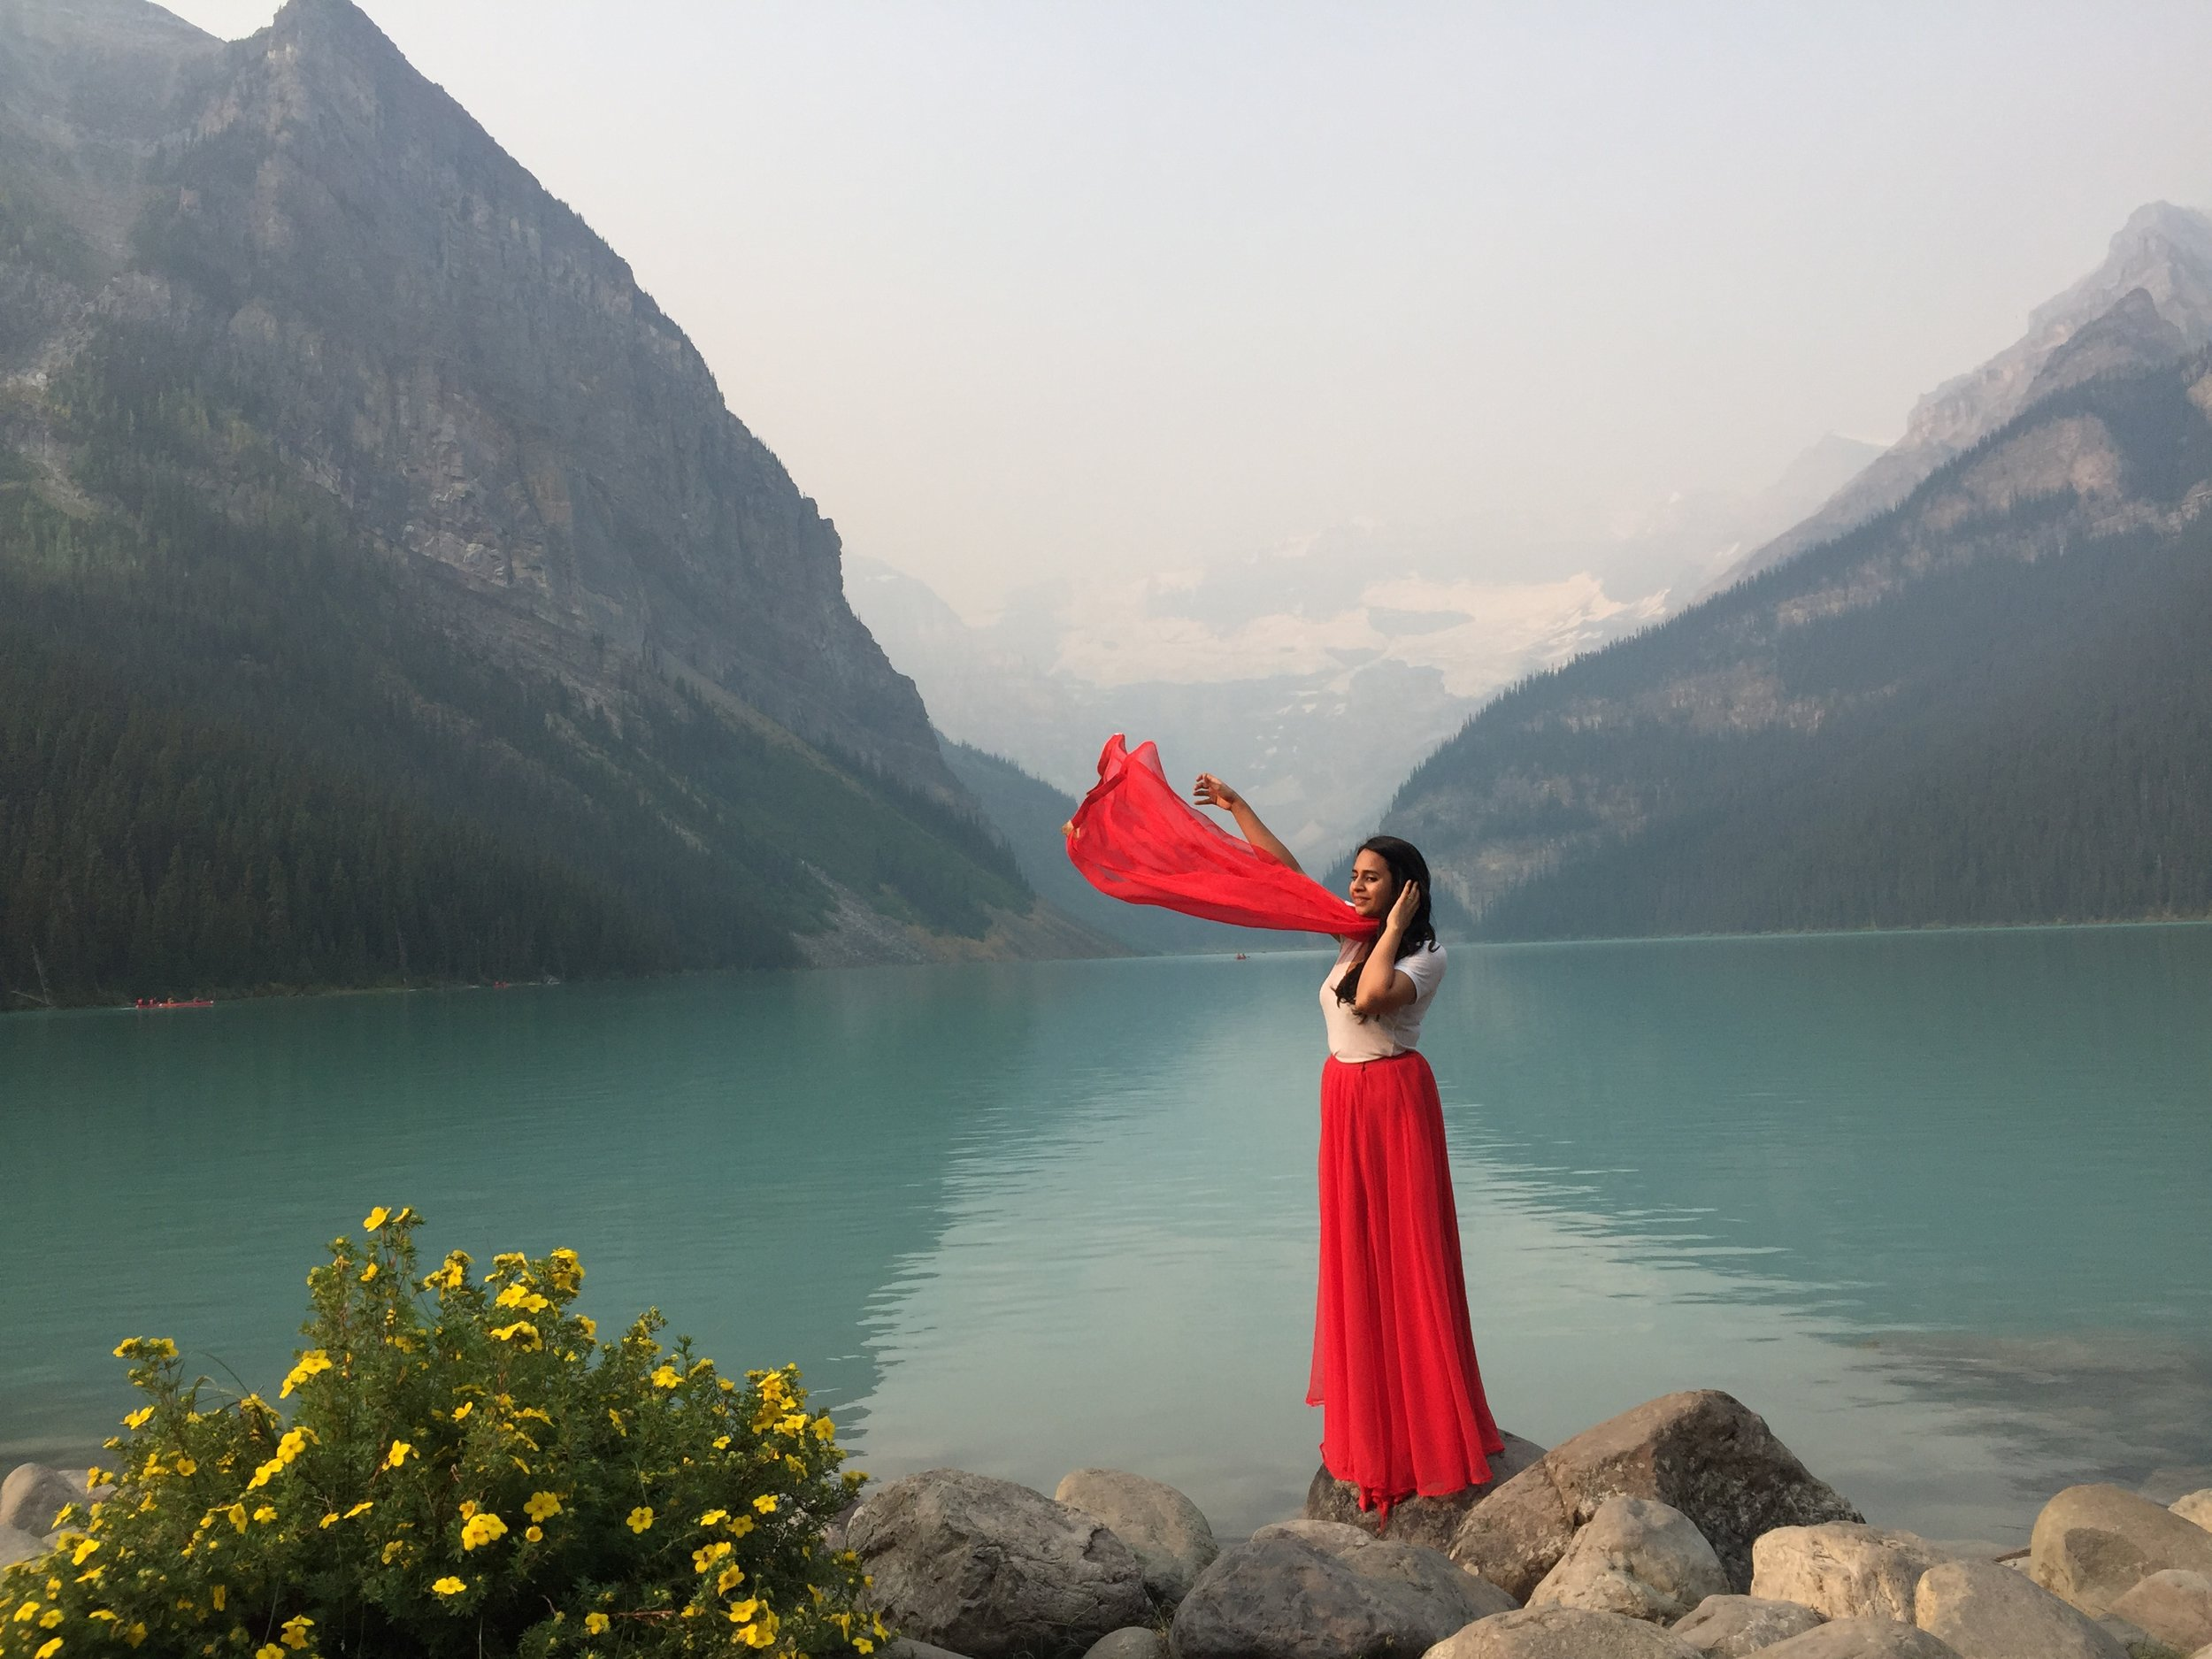 Lake Louise Banff National Park Canada Tour Guide Itinerary Charisma Shah